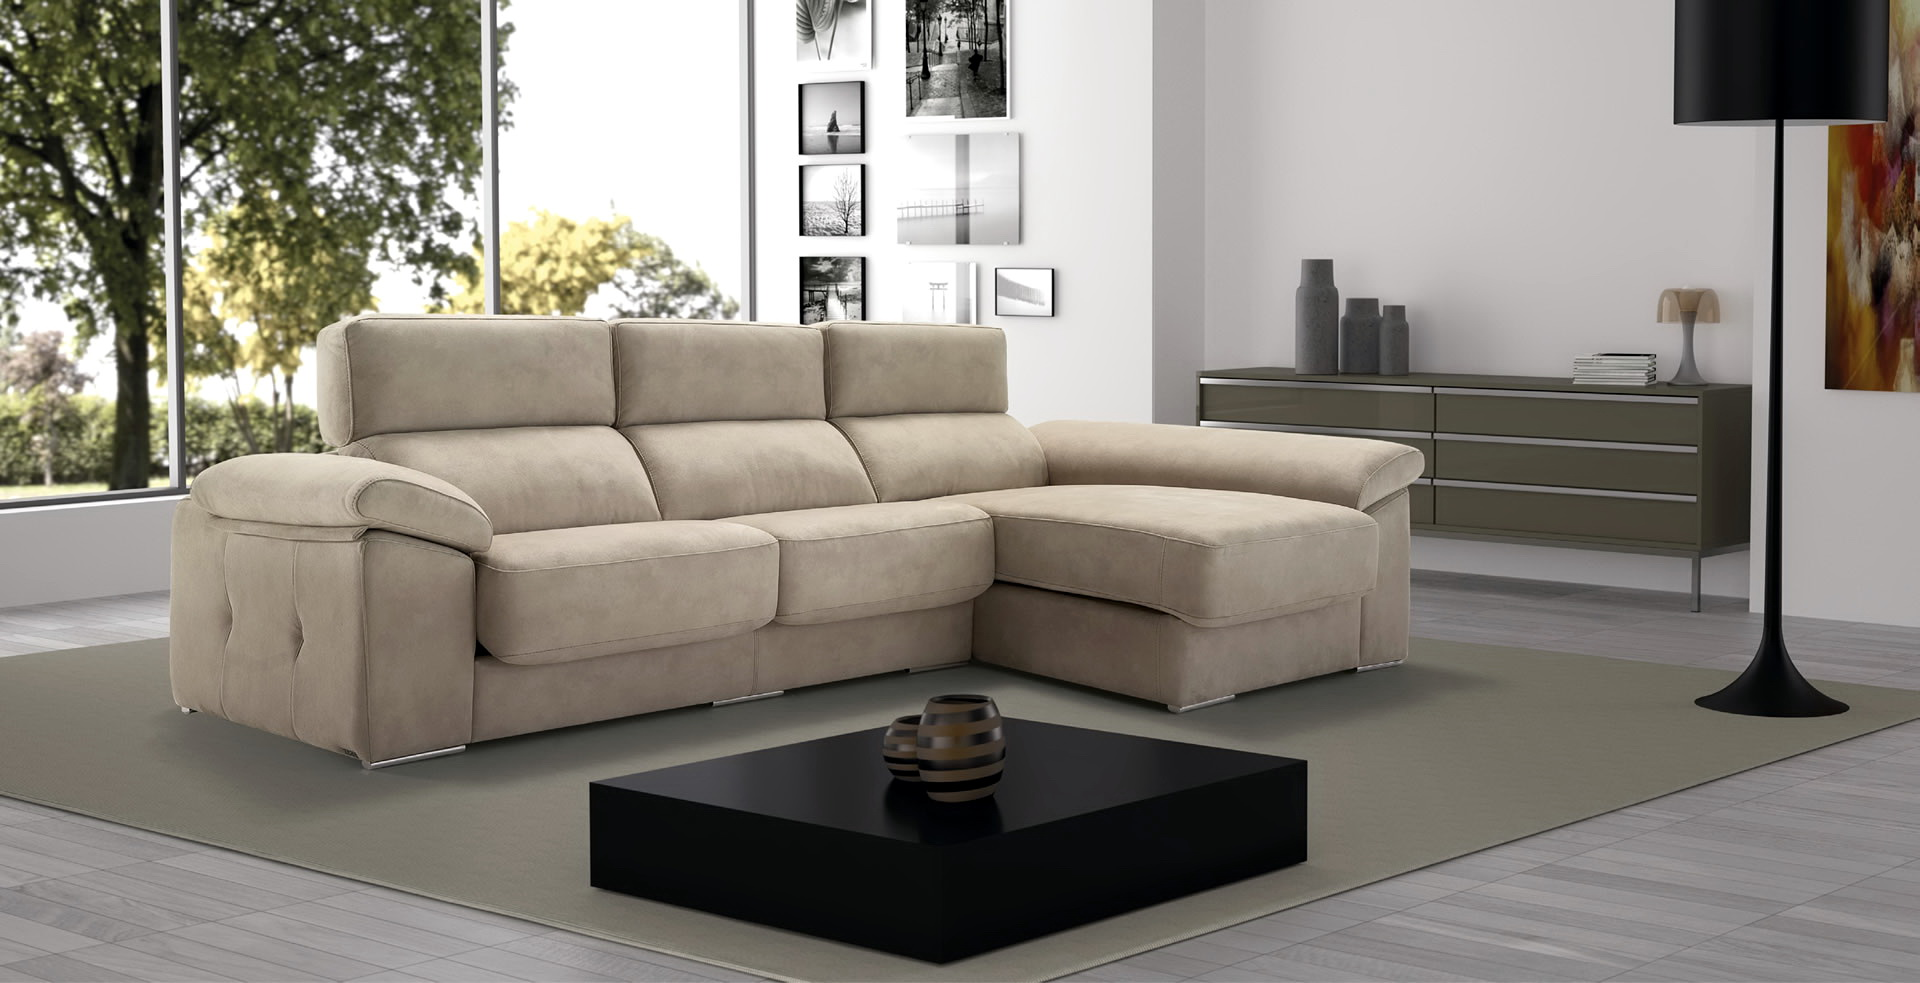 Muebles Soria Soria Sofá Chaise Longue Modular Asientos Extensibles By